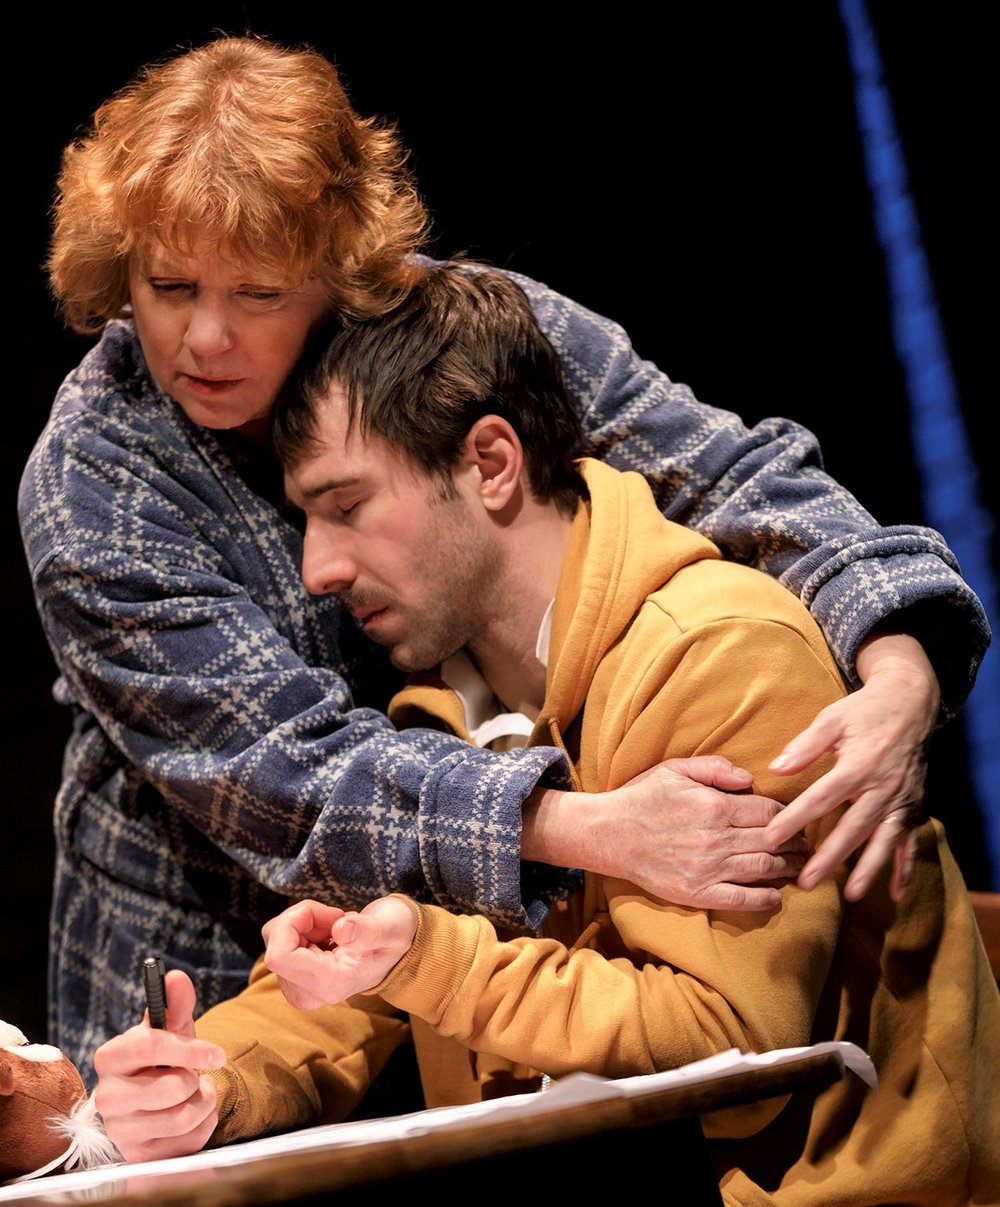 Nancy (Becky Ann Baker) comforts her son, Nat (Alex Hurt). Photographs by Joan Marcus.